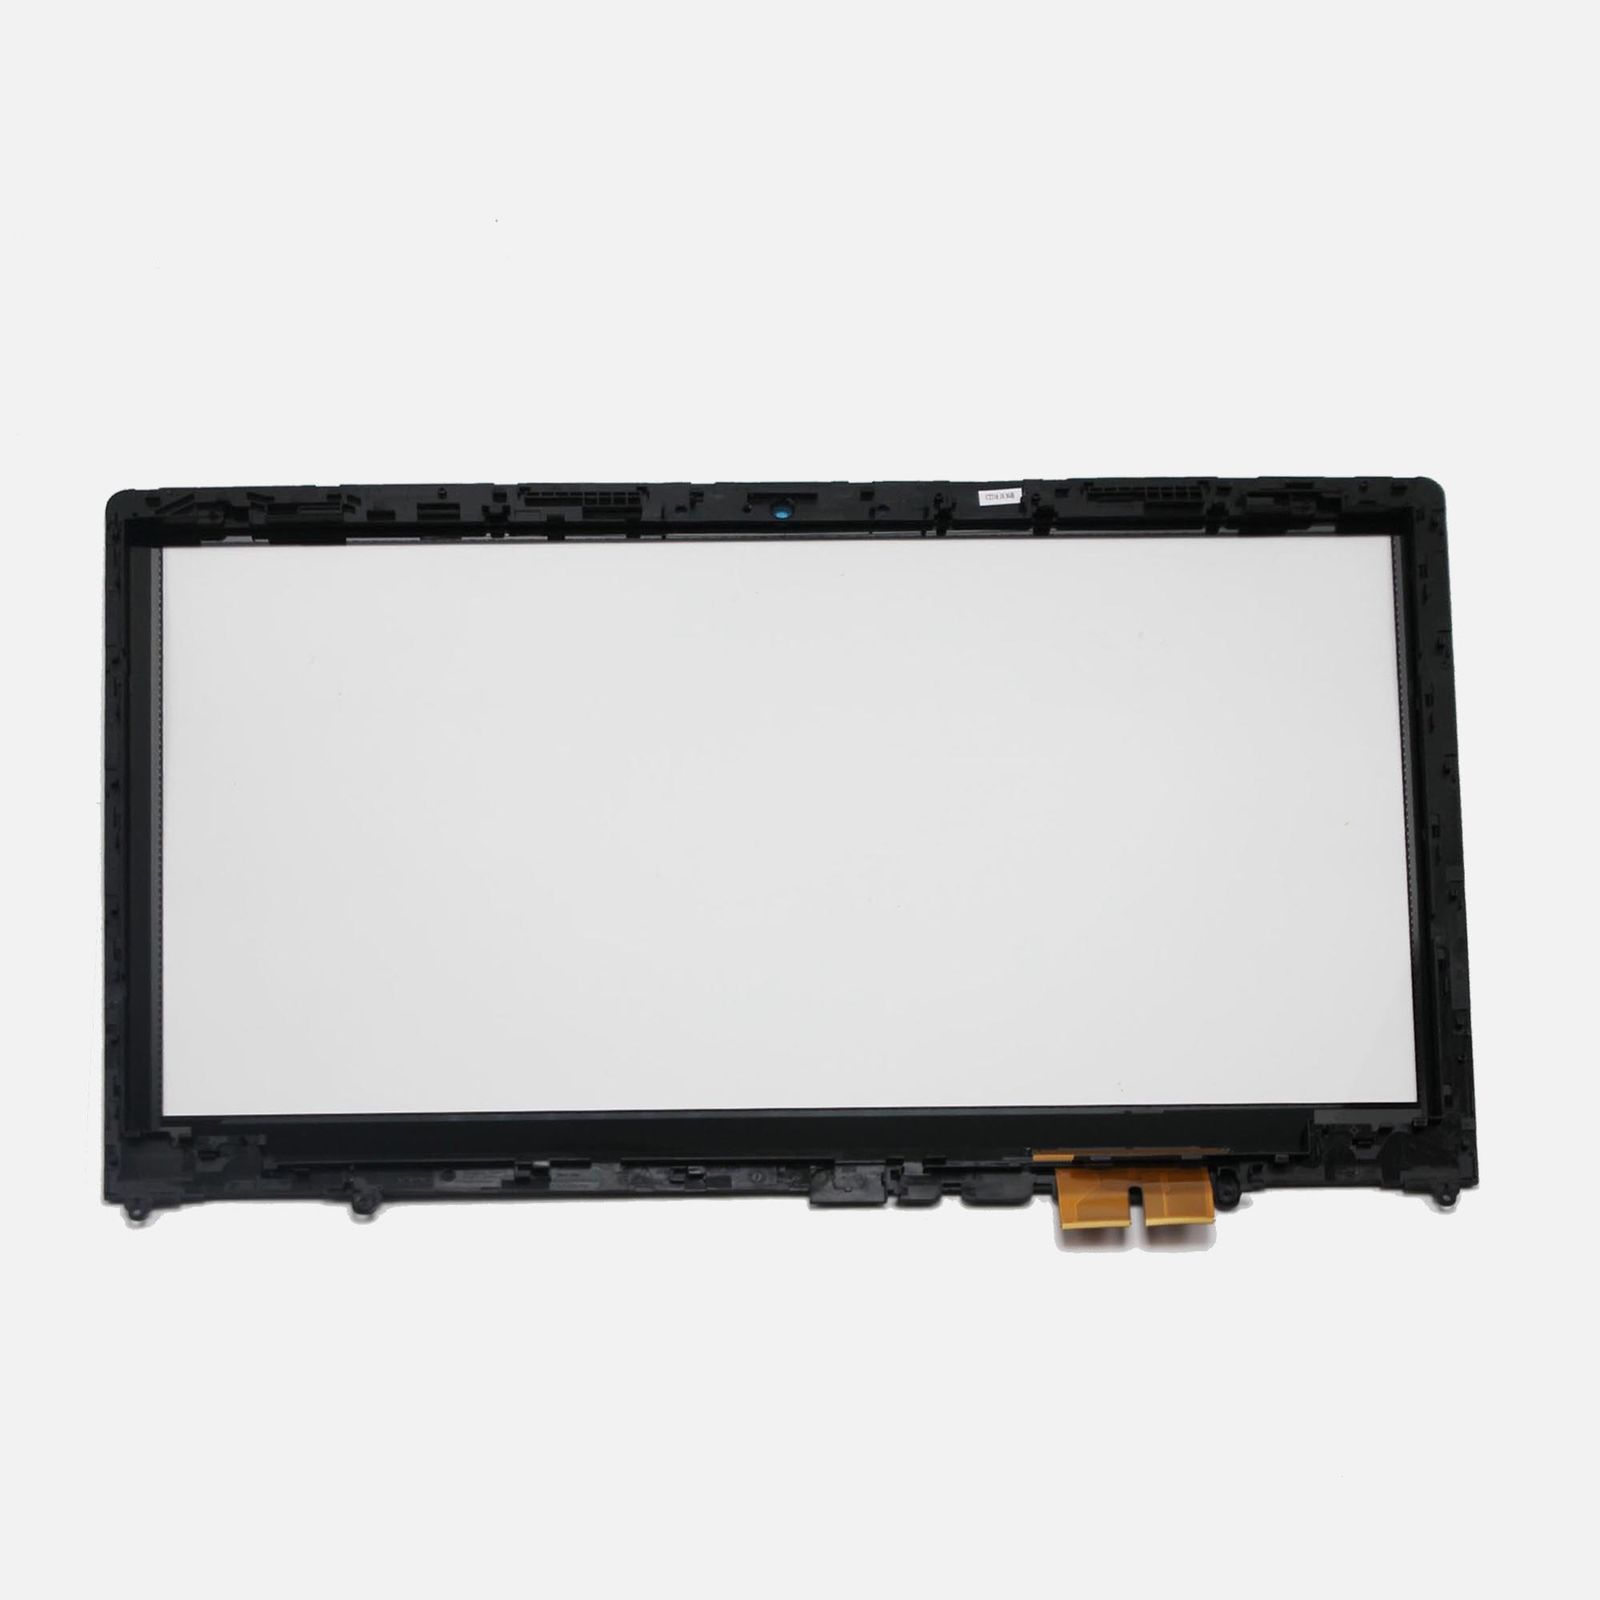 15.6 inch Front Touch Screen Panel digitizer glass replacement parts for Lenovo Flex4 15 Flex4-15 YOGA510-1515.6 inch Front Touch Screen Panel digitizer glass replacement parts for Lenovo Flex4 15 Flex4-15 YOGA510-15